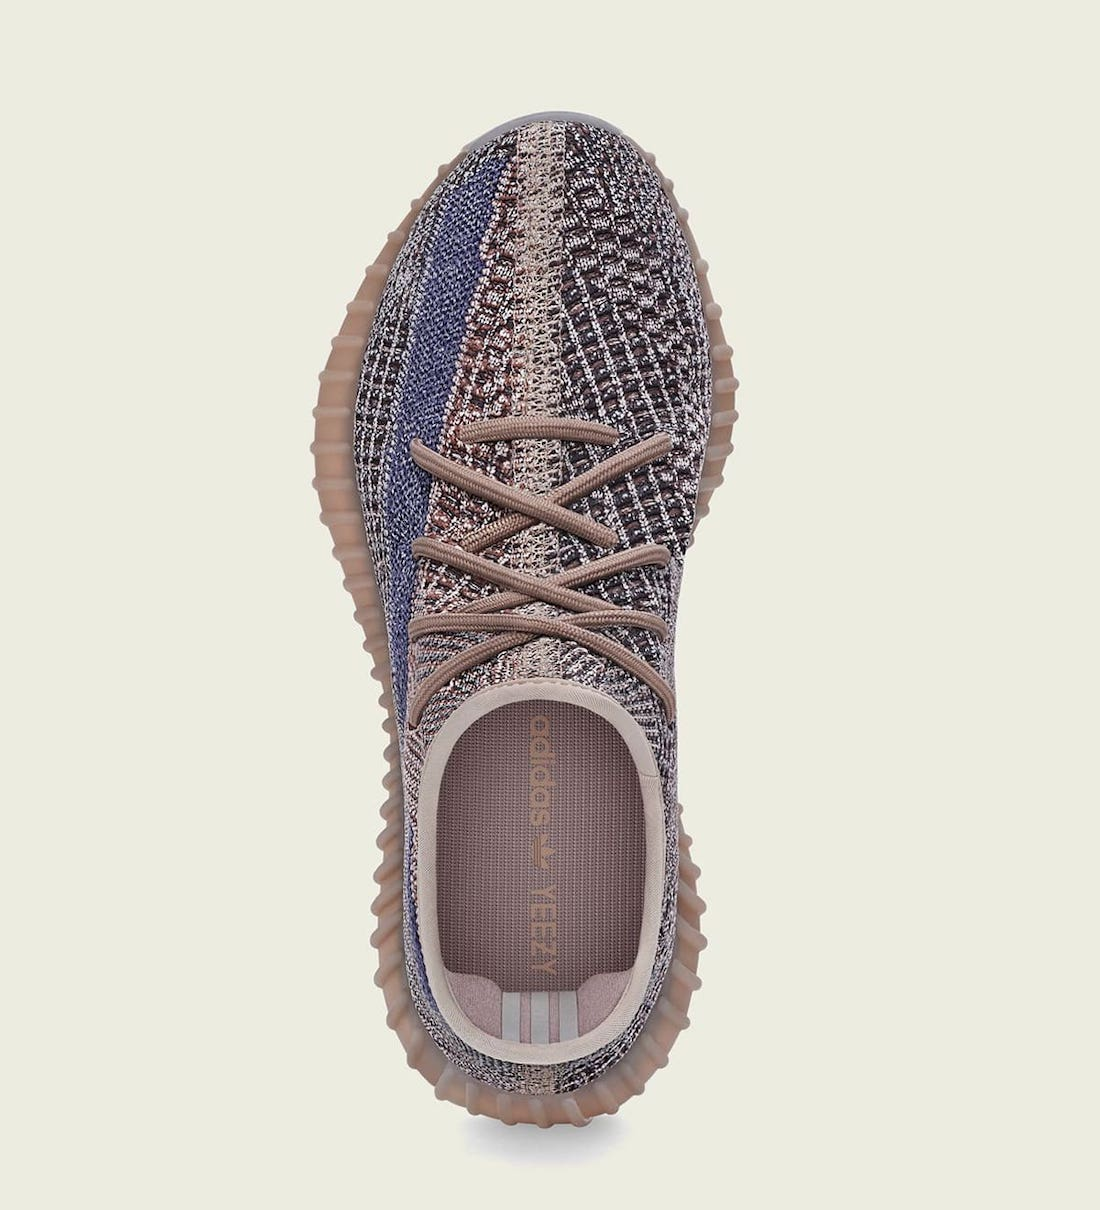 adidas-Yeezy-Boost-350-V2-Fade-H02795-Release-Date-Price-3